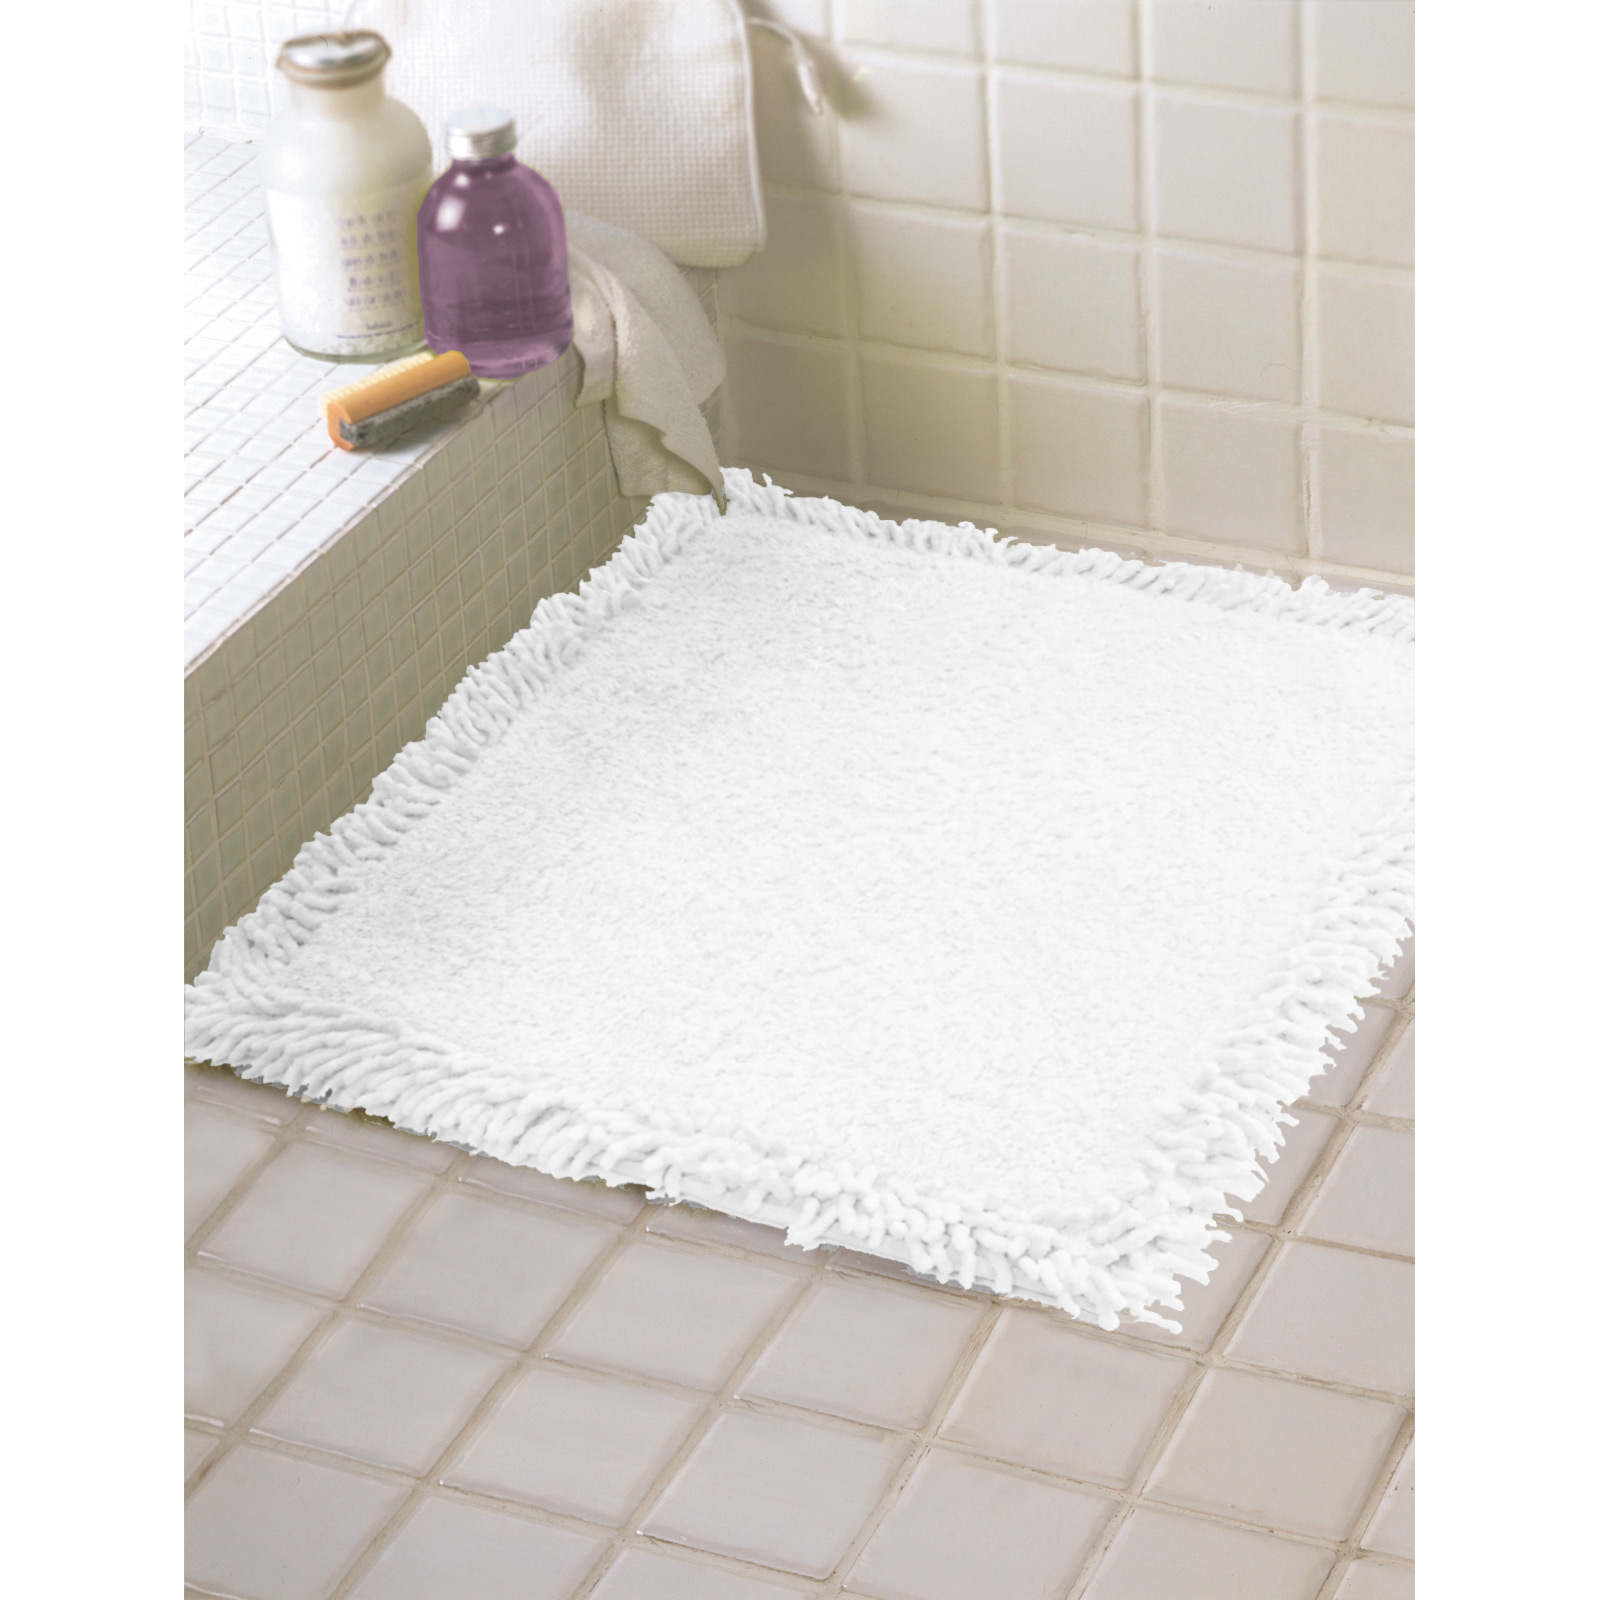 60cm X 60cm Shower Mat Floor Towel Bath Rug 100 Cotton